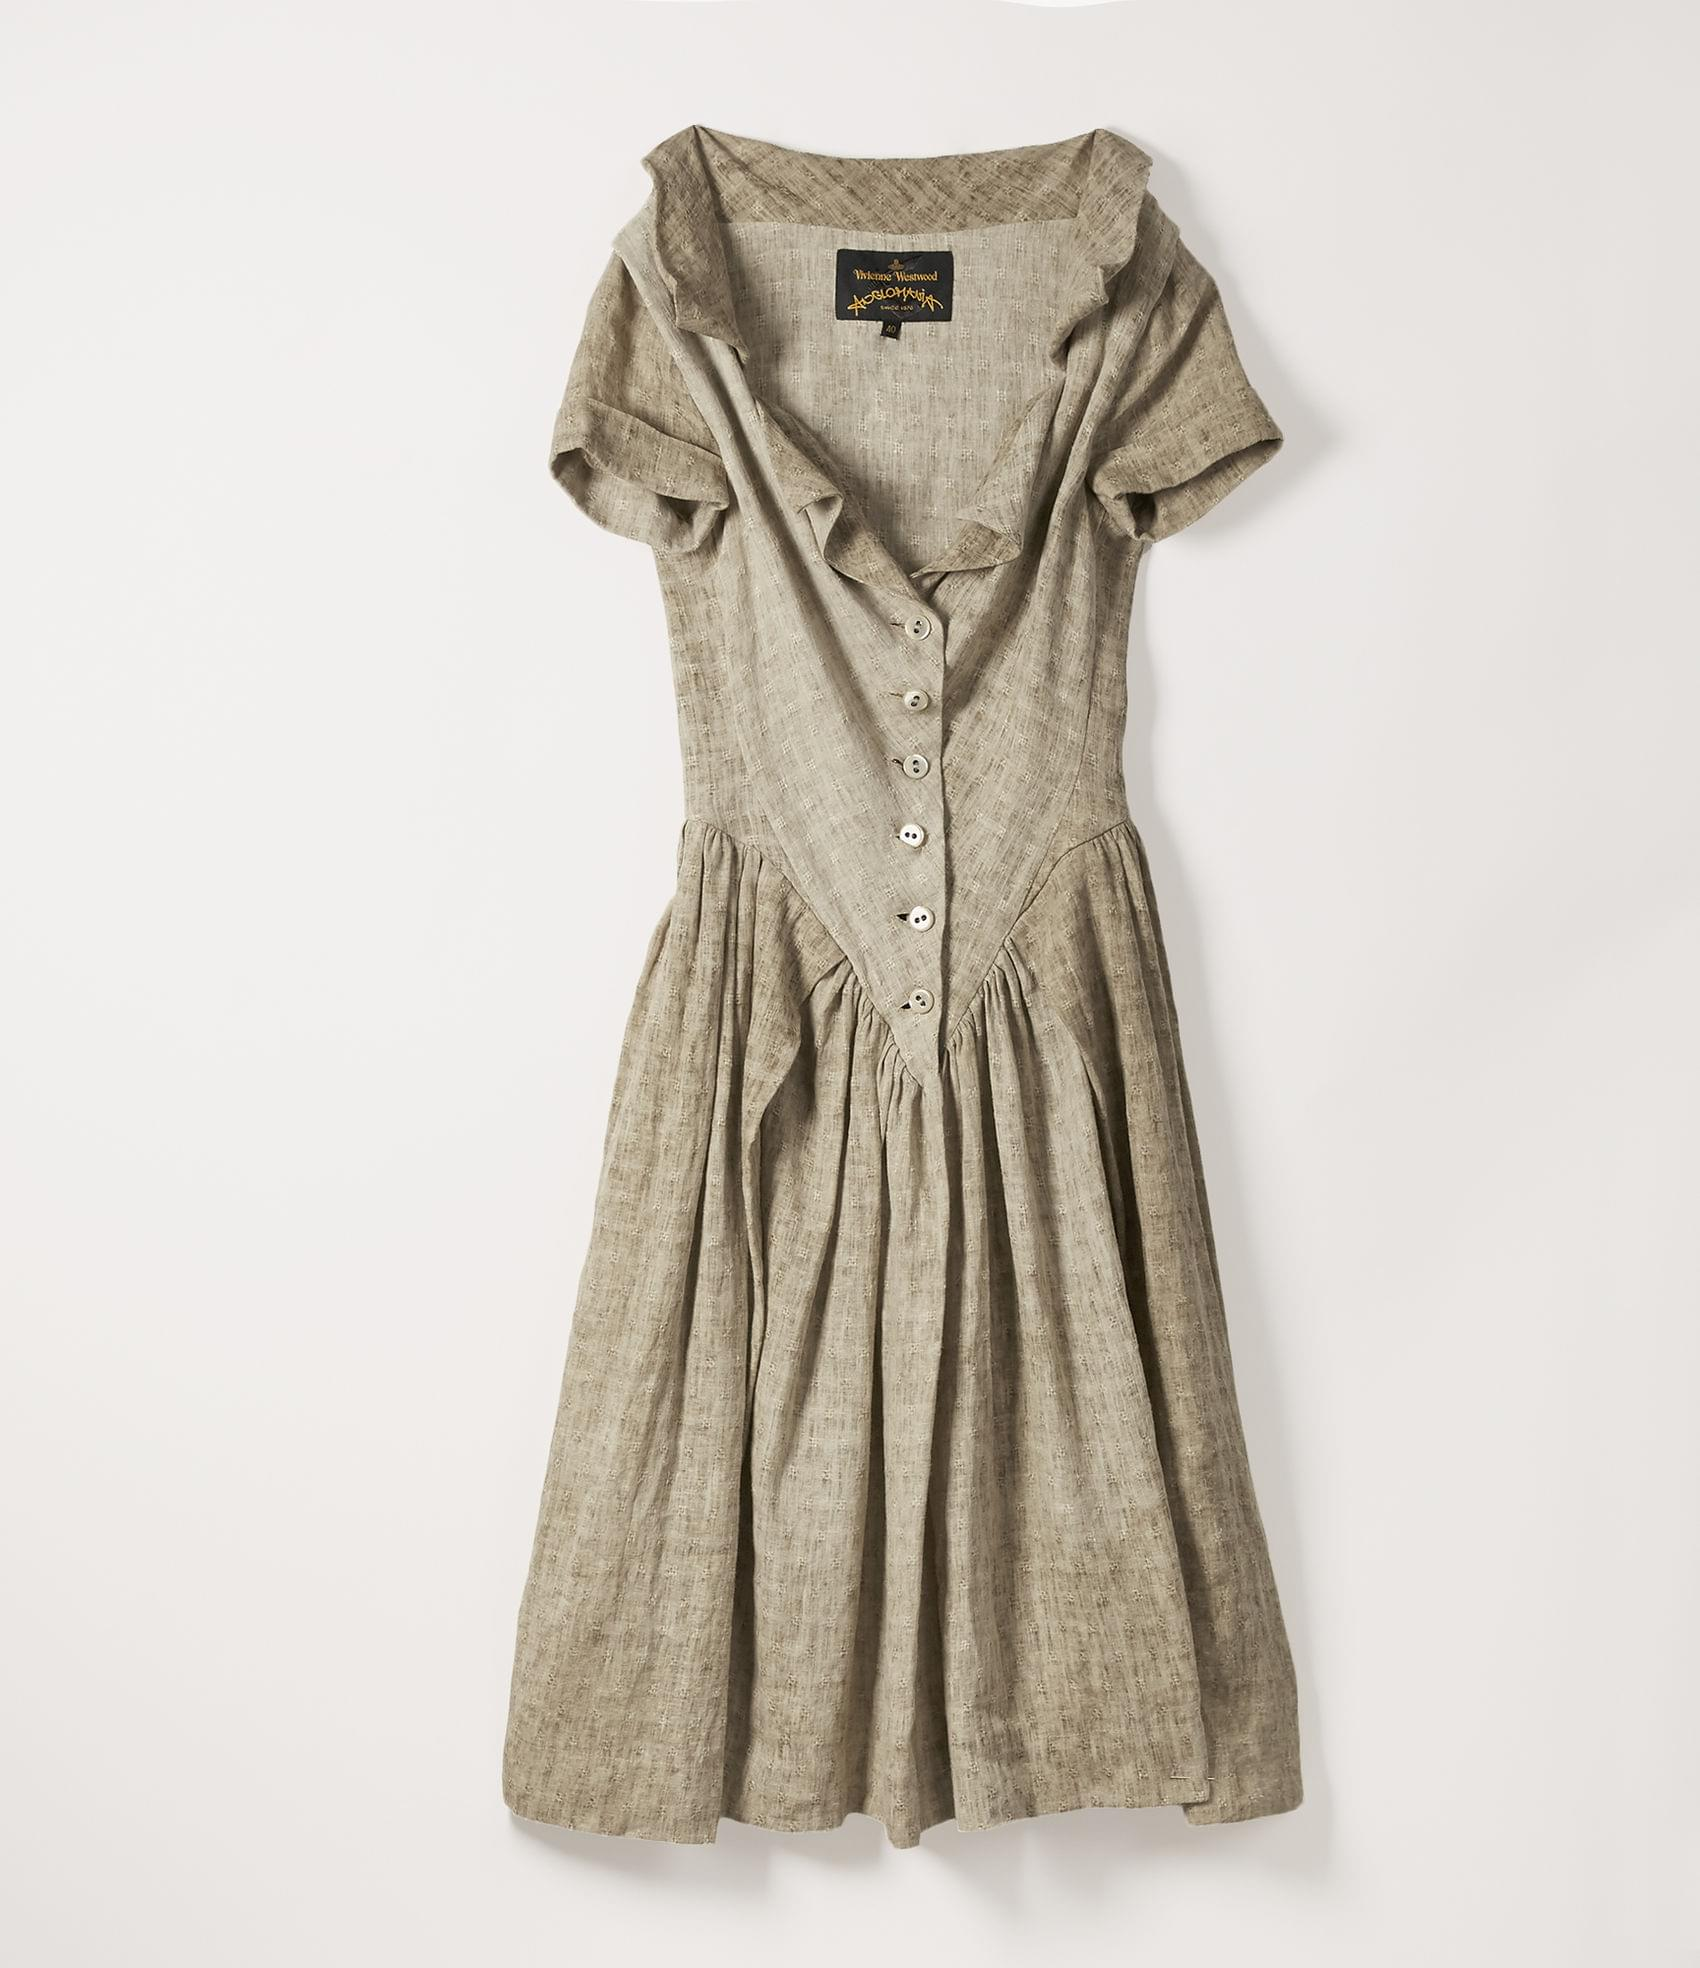 Vivienne Westwood MONDAY DRESS NATURAL